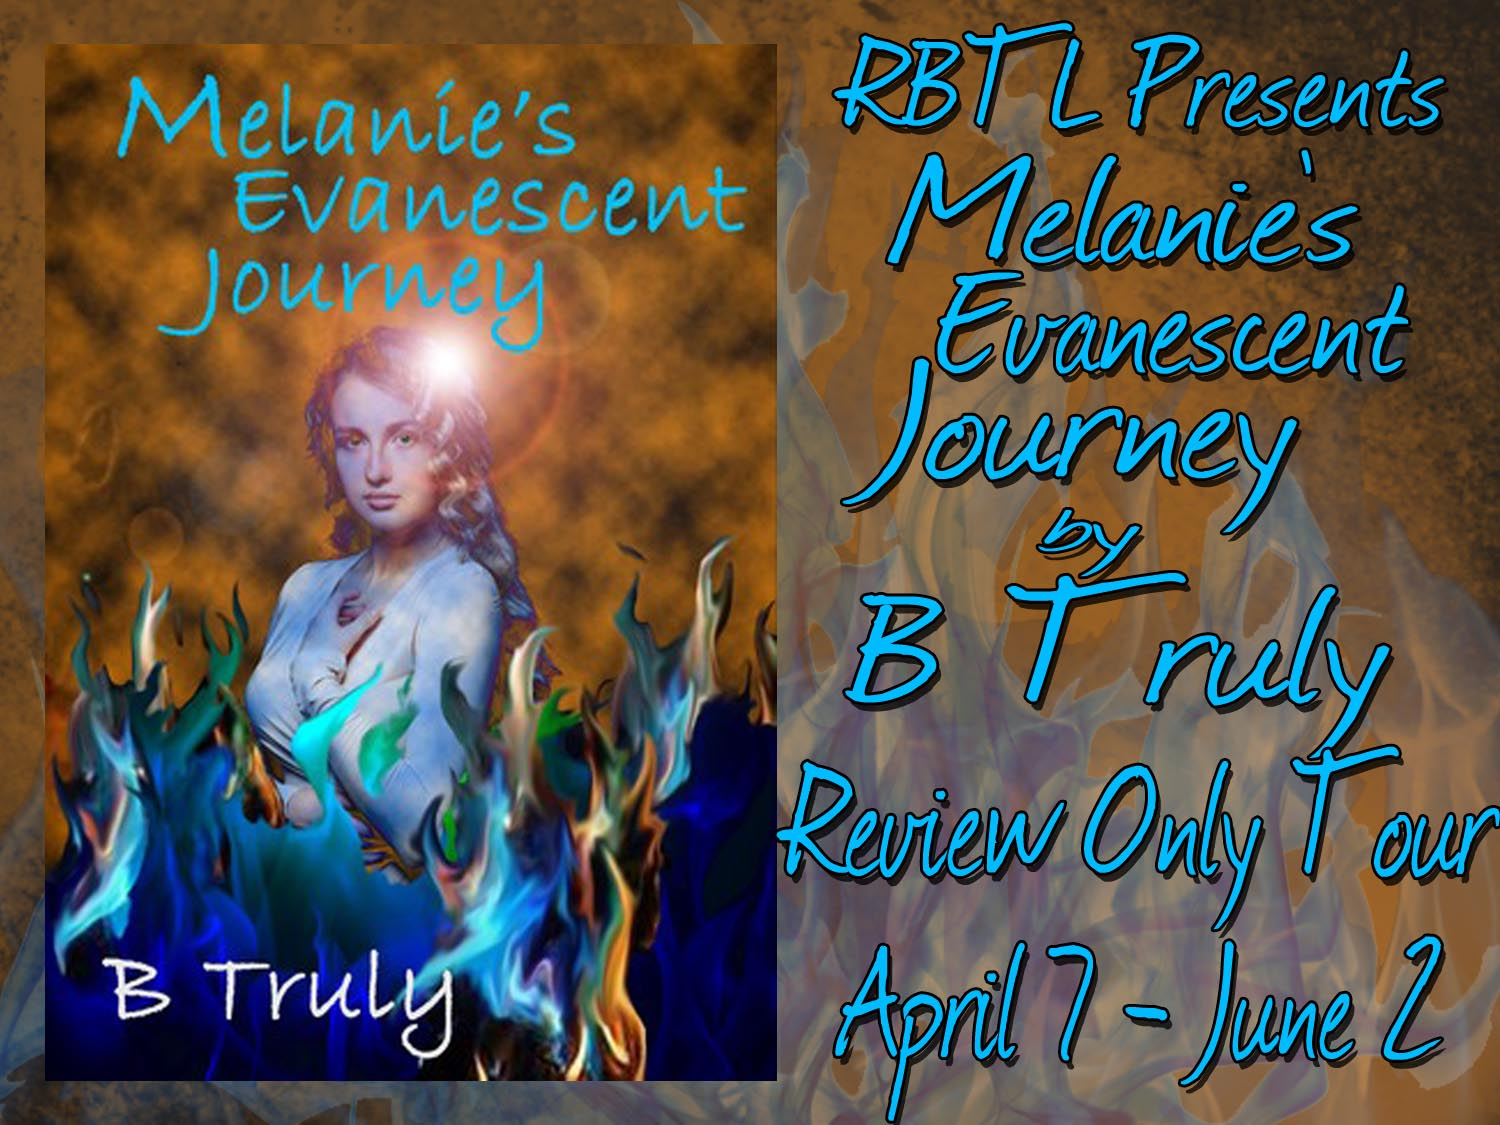 Melanie's Evanescent Journey